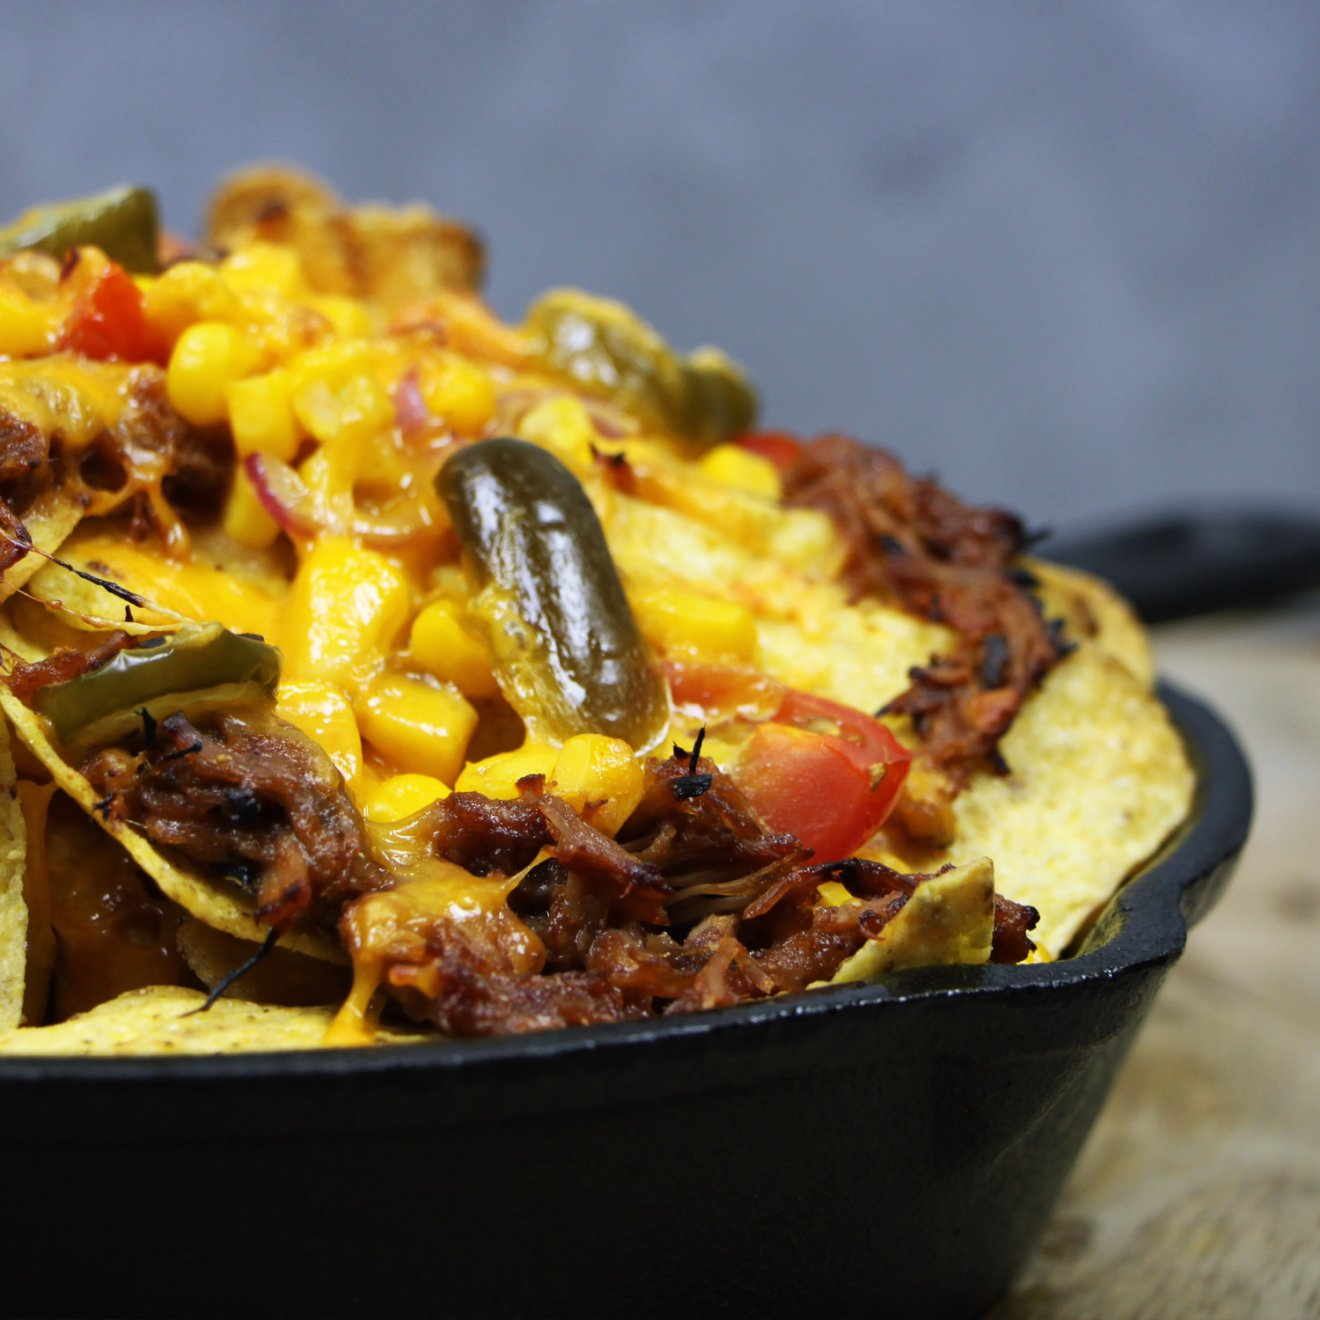 Pulled Pork Nacho's